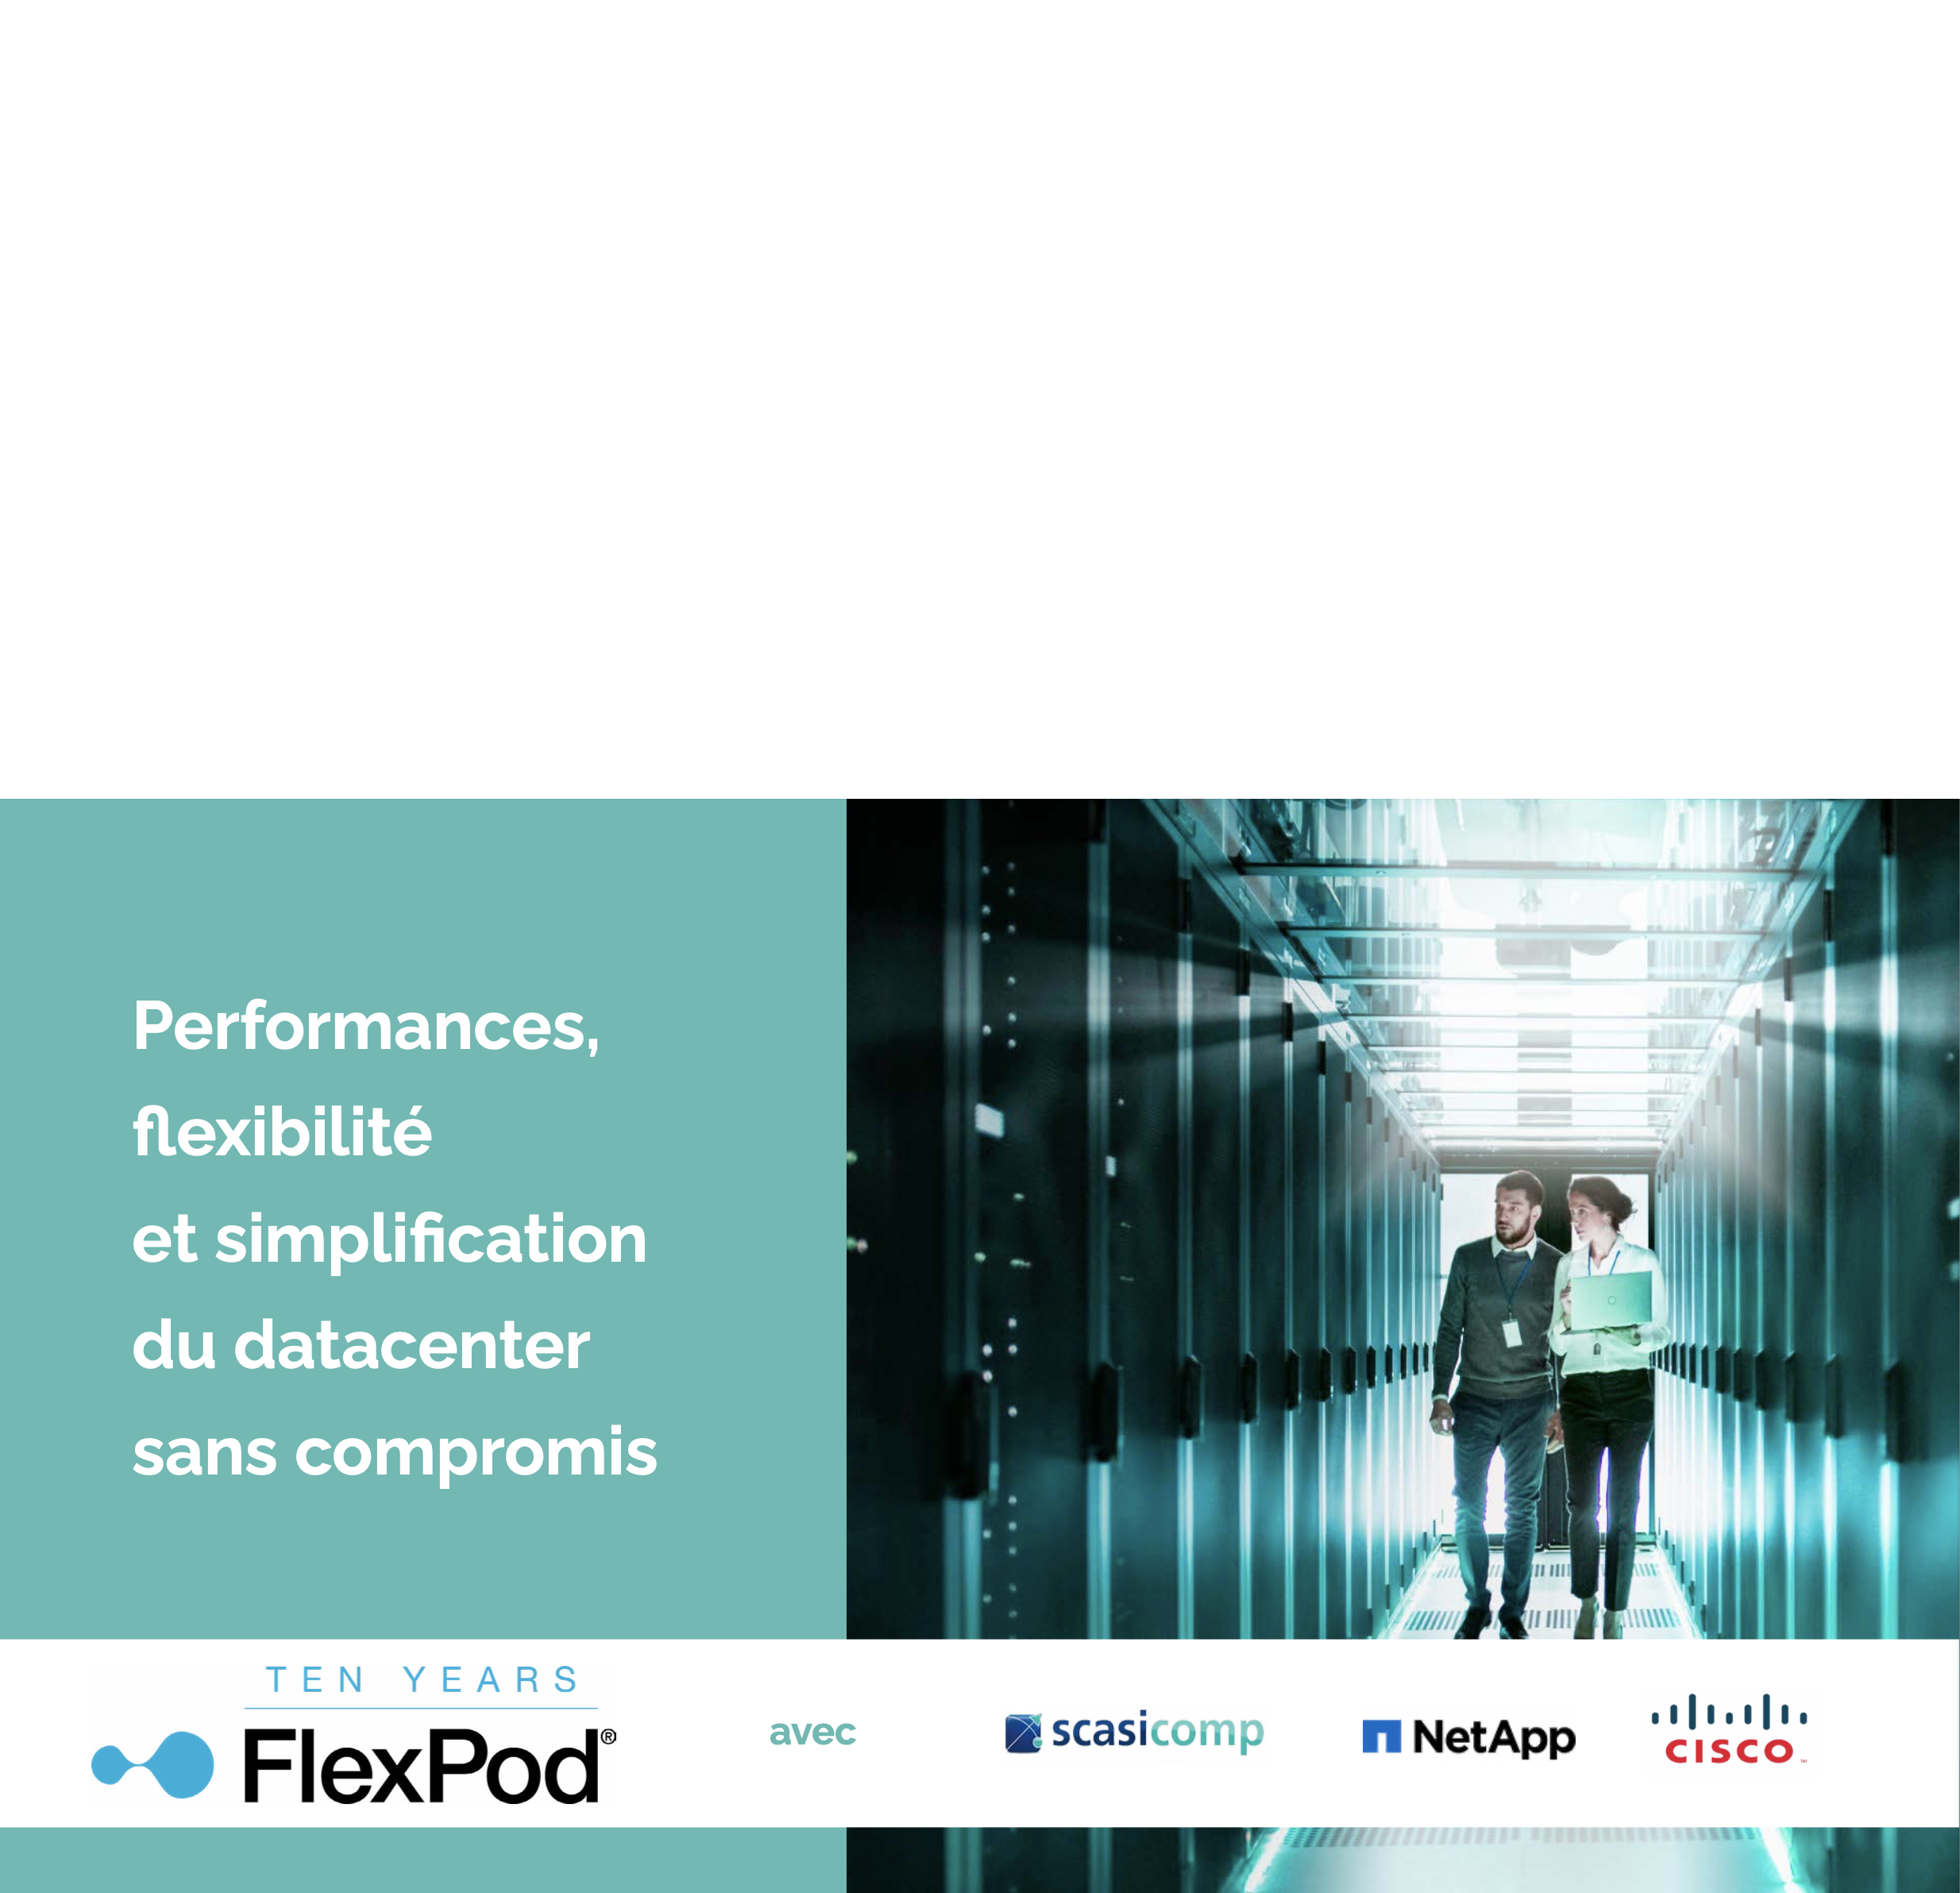 Performances, flexibilité et simplification du datacenter sans compromis